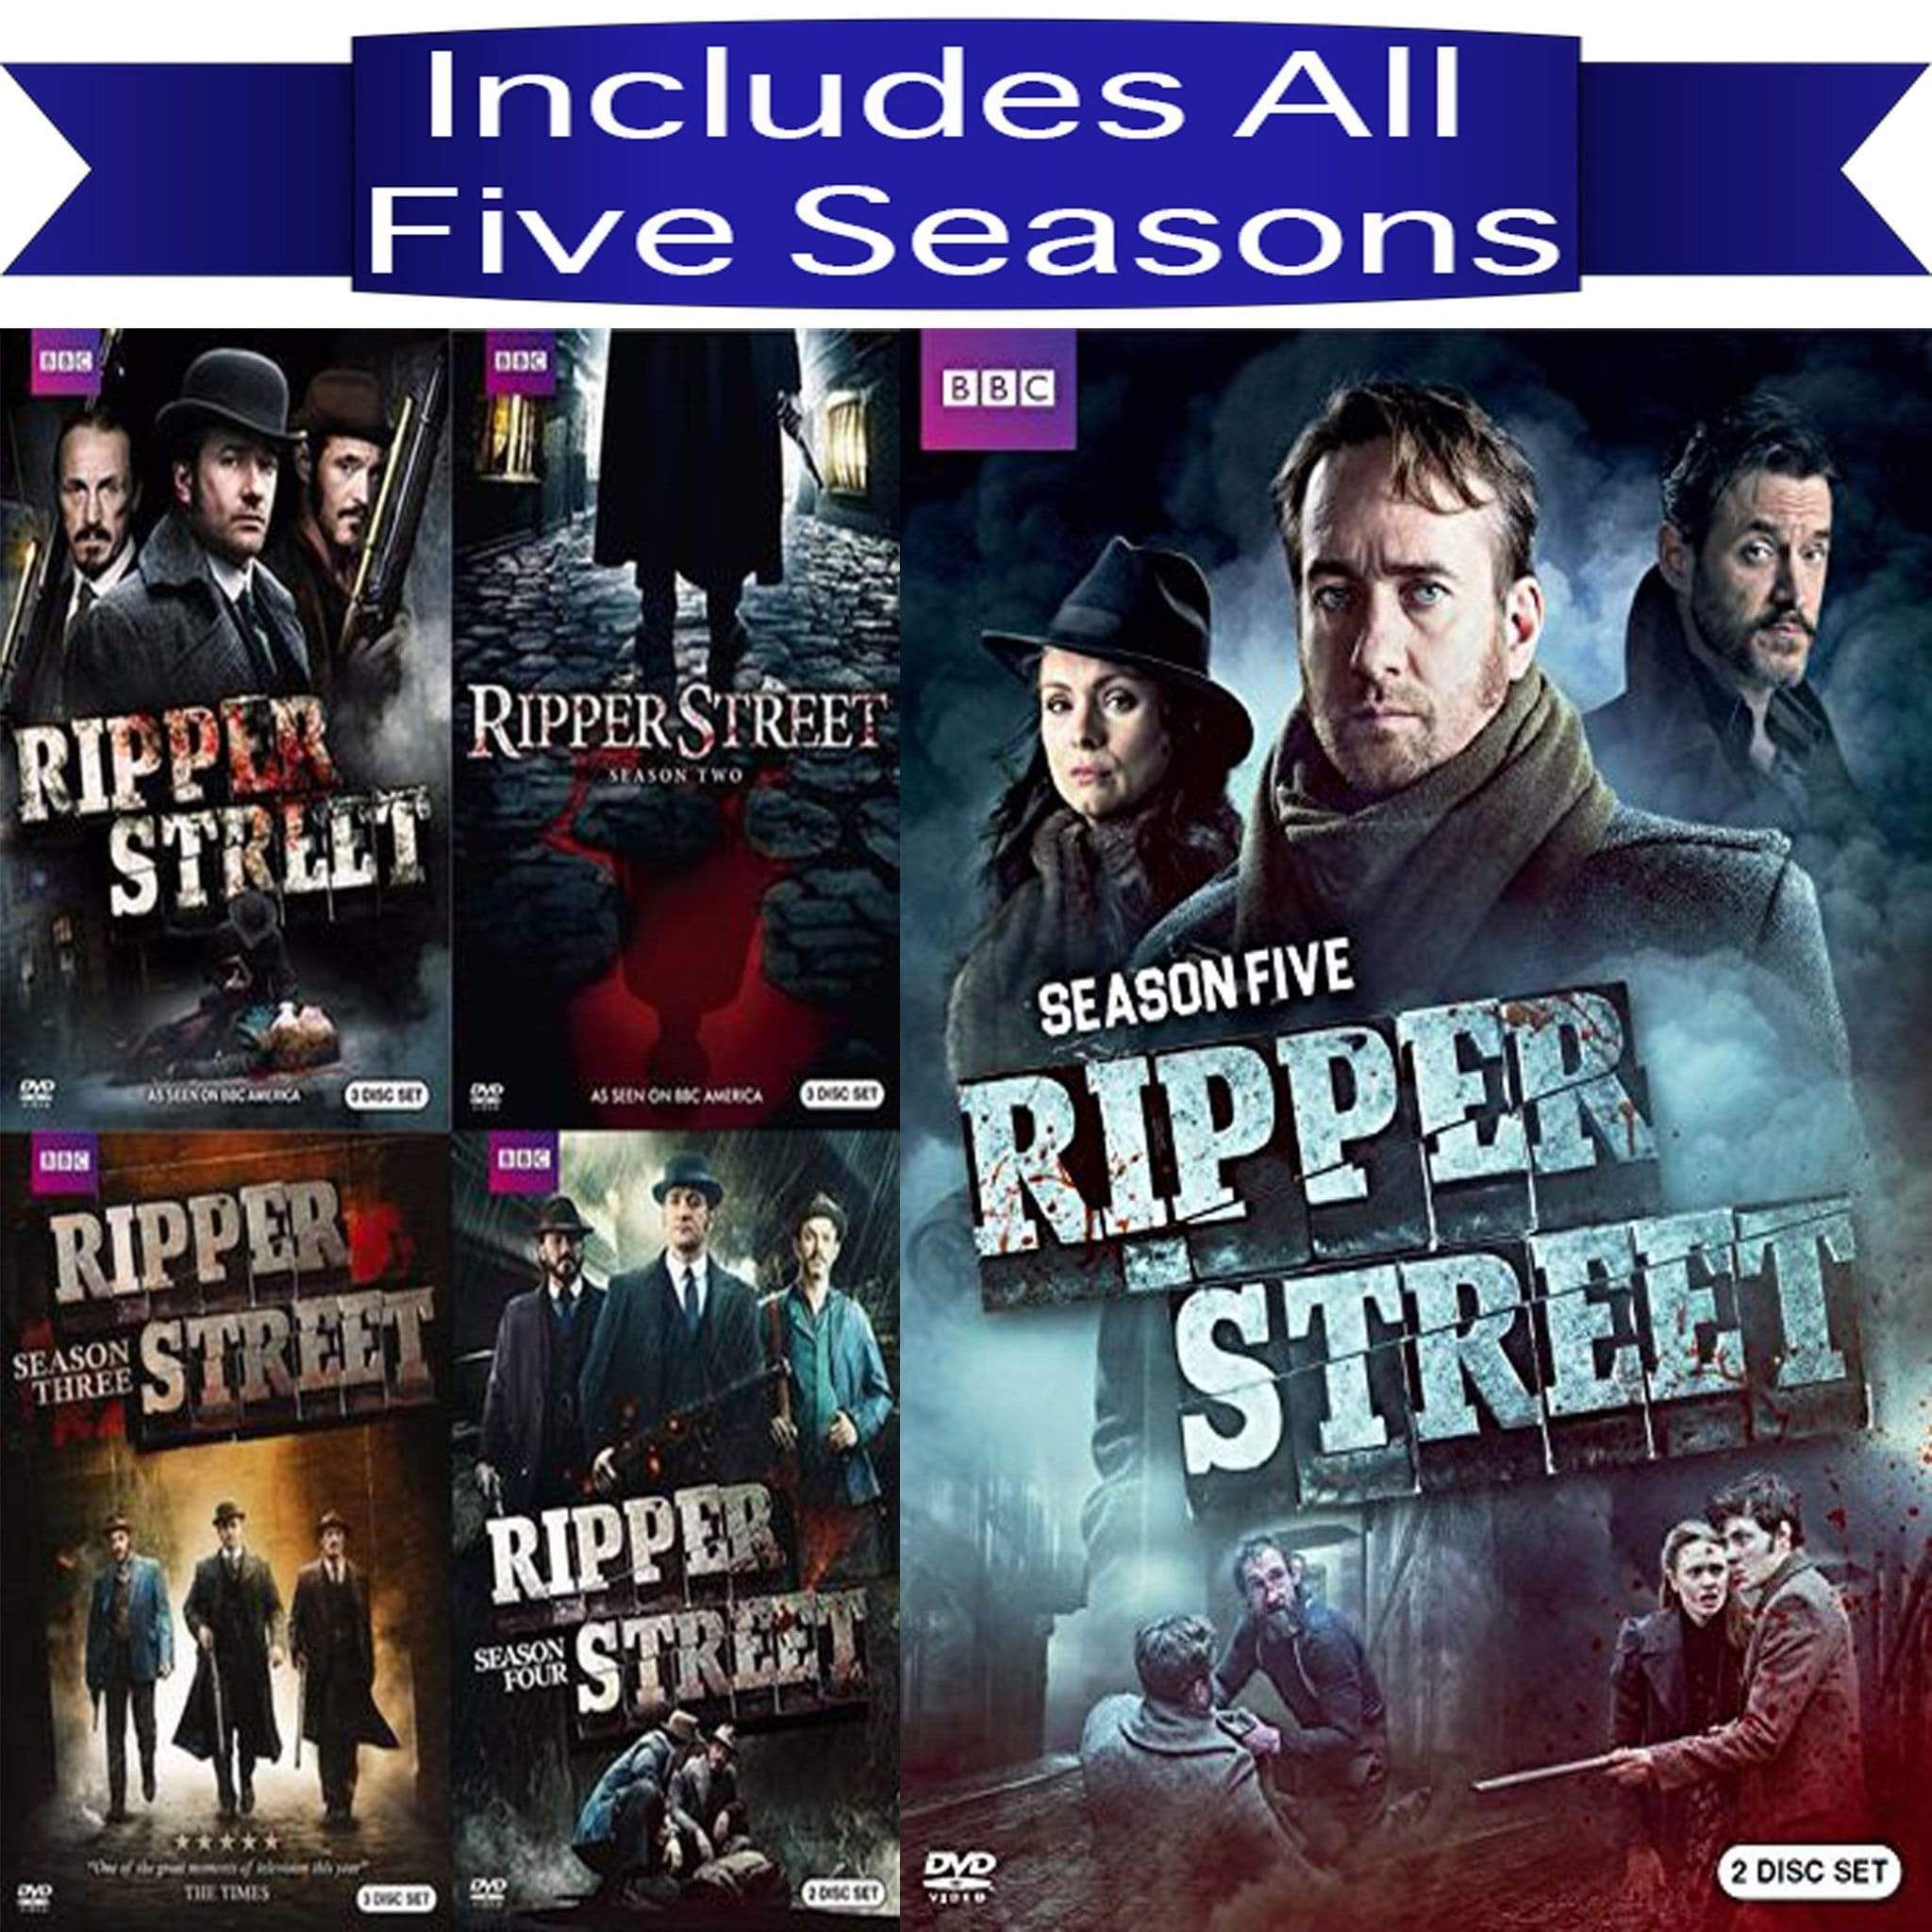 Ripper Street DVD Seasons 1-5 Complete Series Set BBC America DVDs & Blu-ray Discs > DVDs